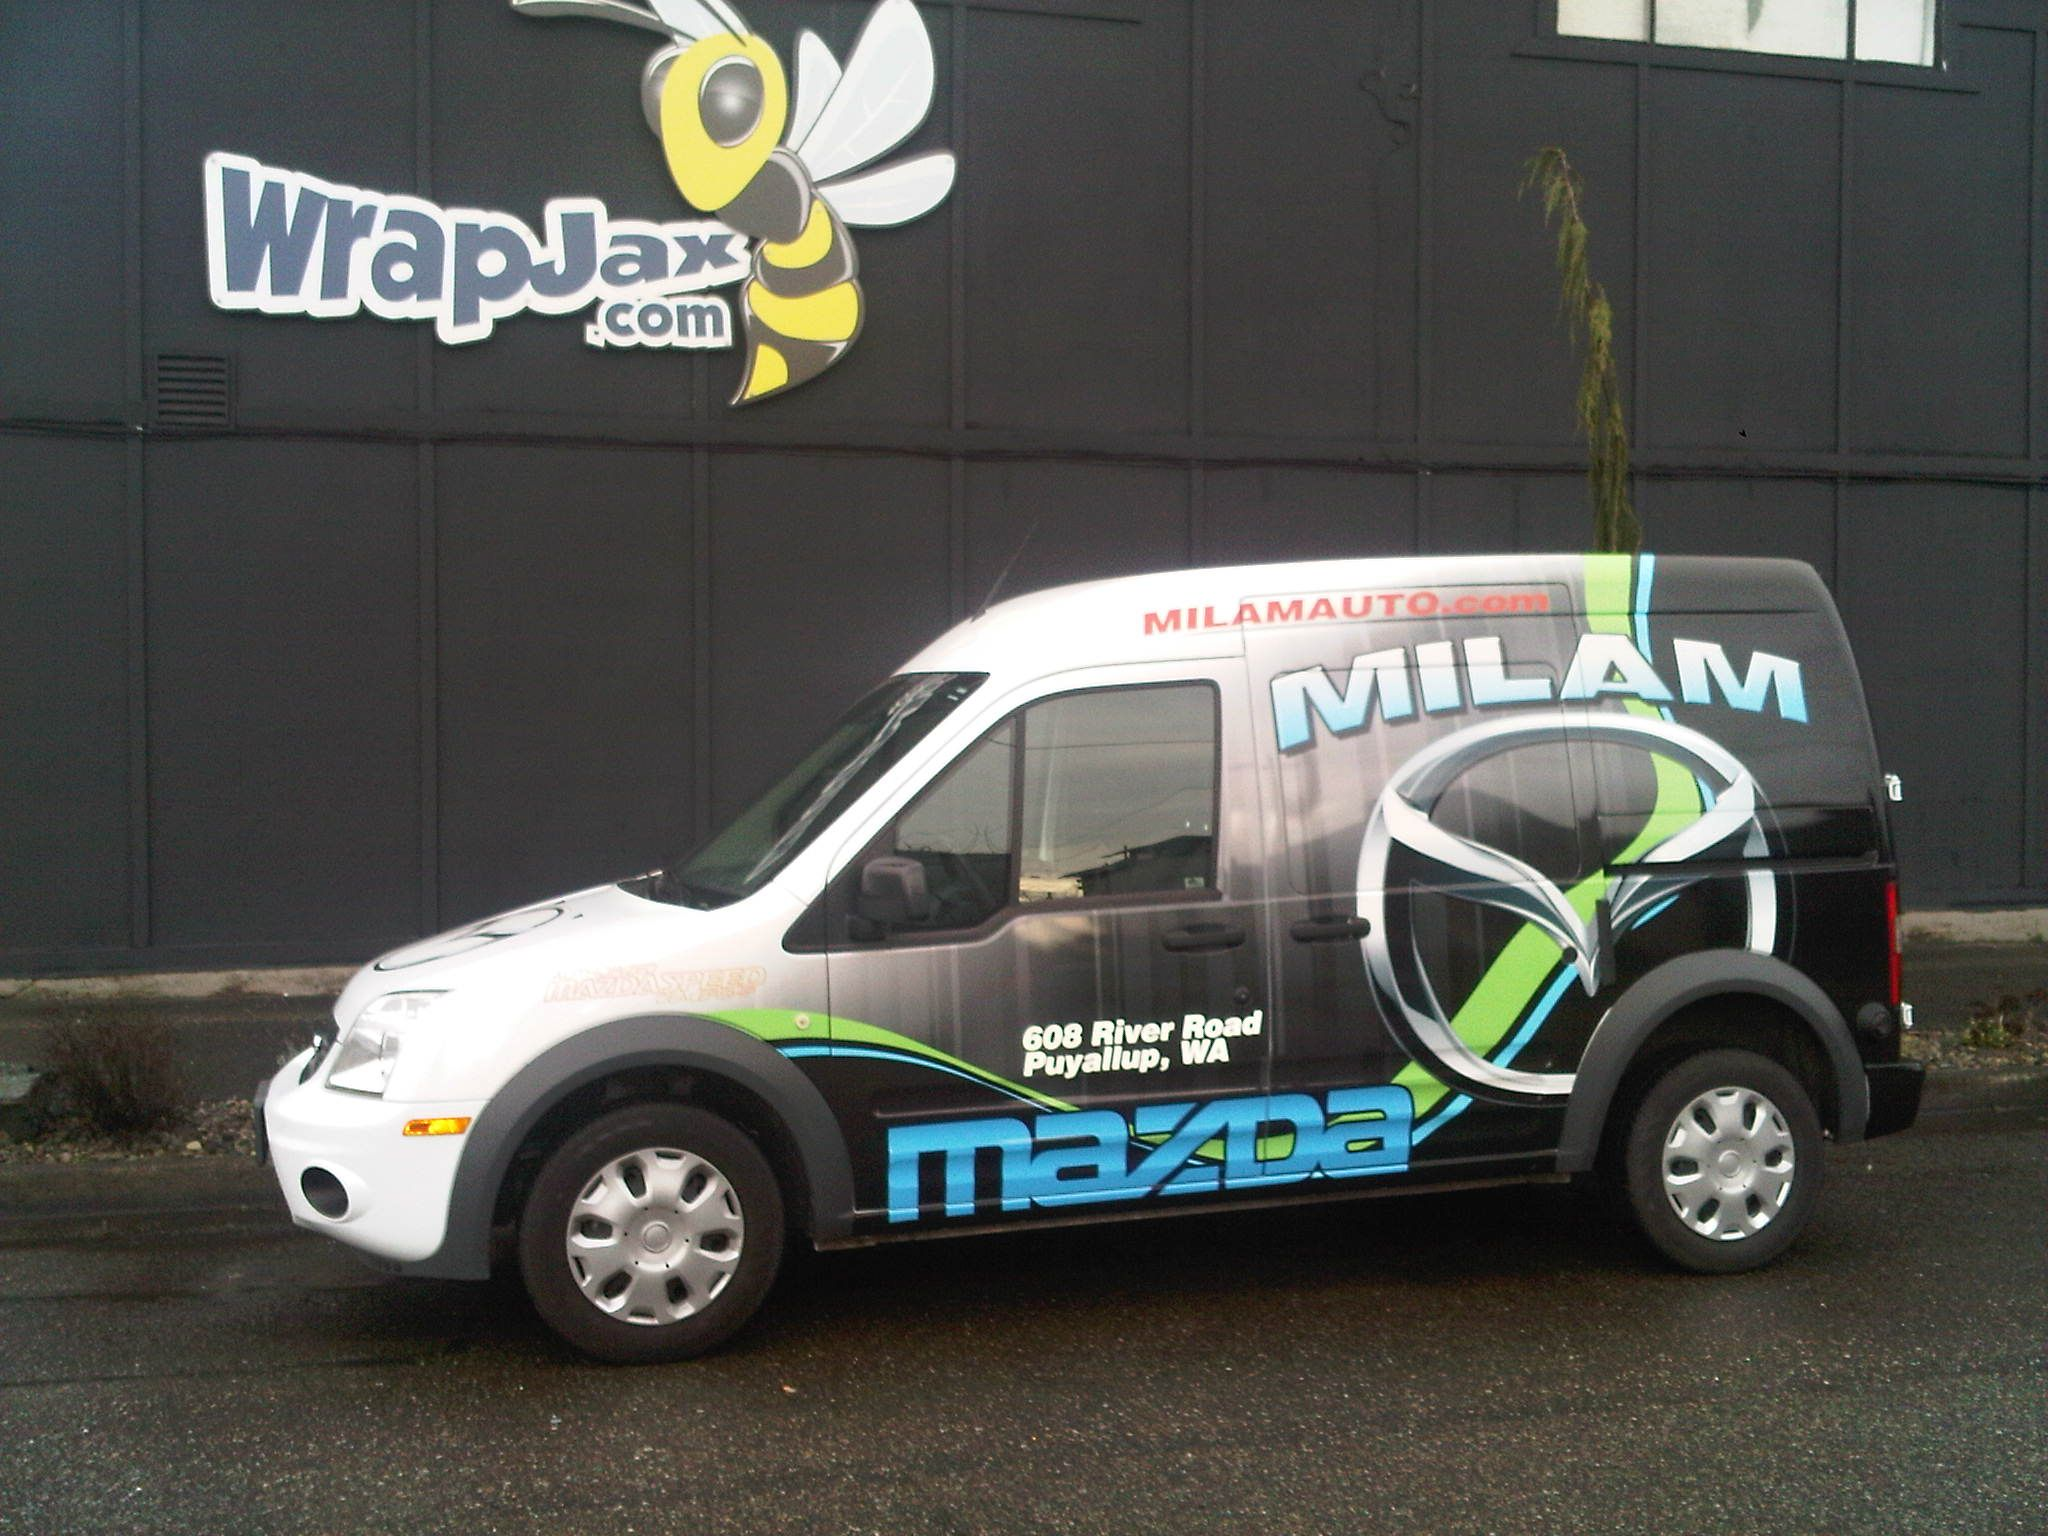 Wrapjax Com Milam Mazda Ford Transit Connect Wrap Ford Transit